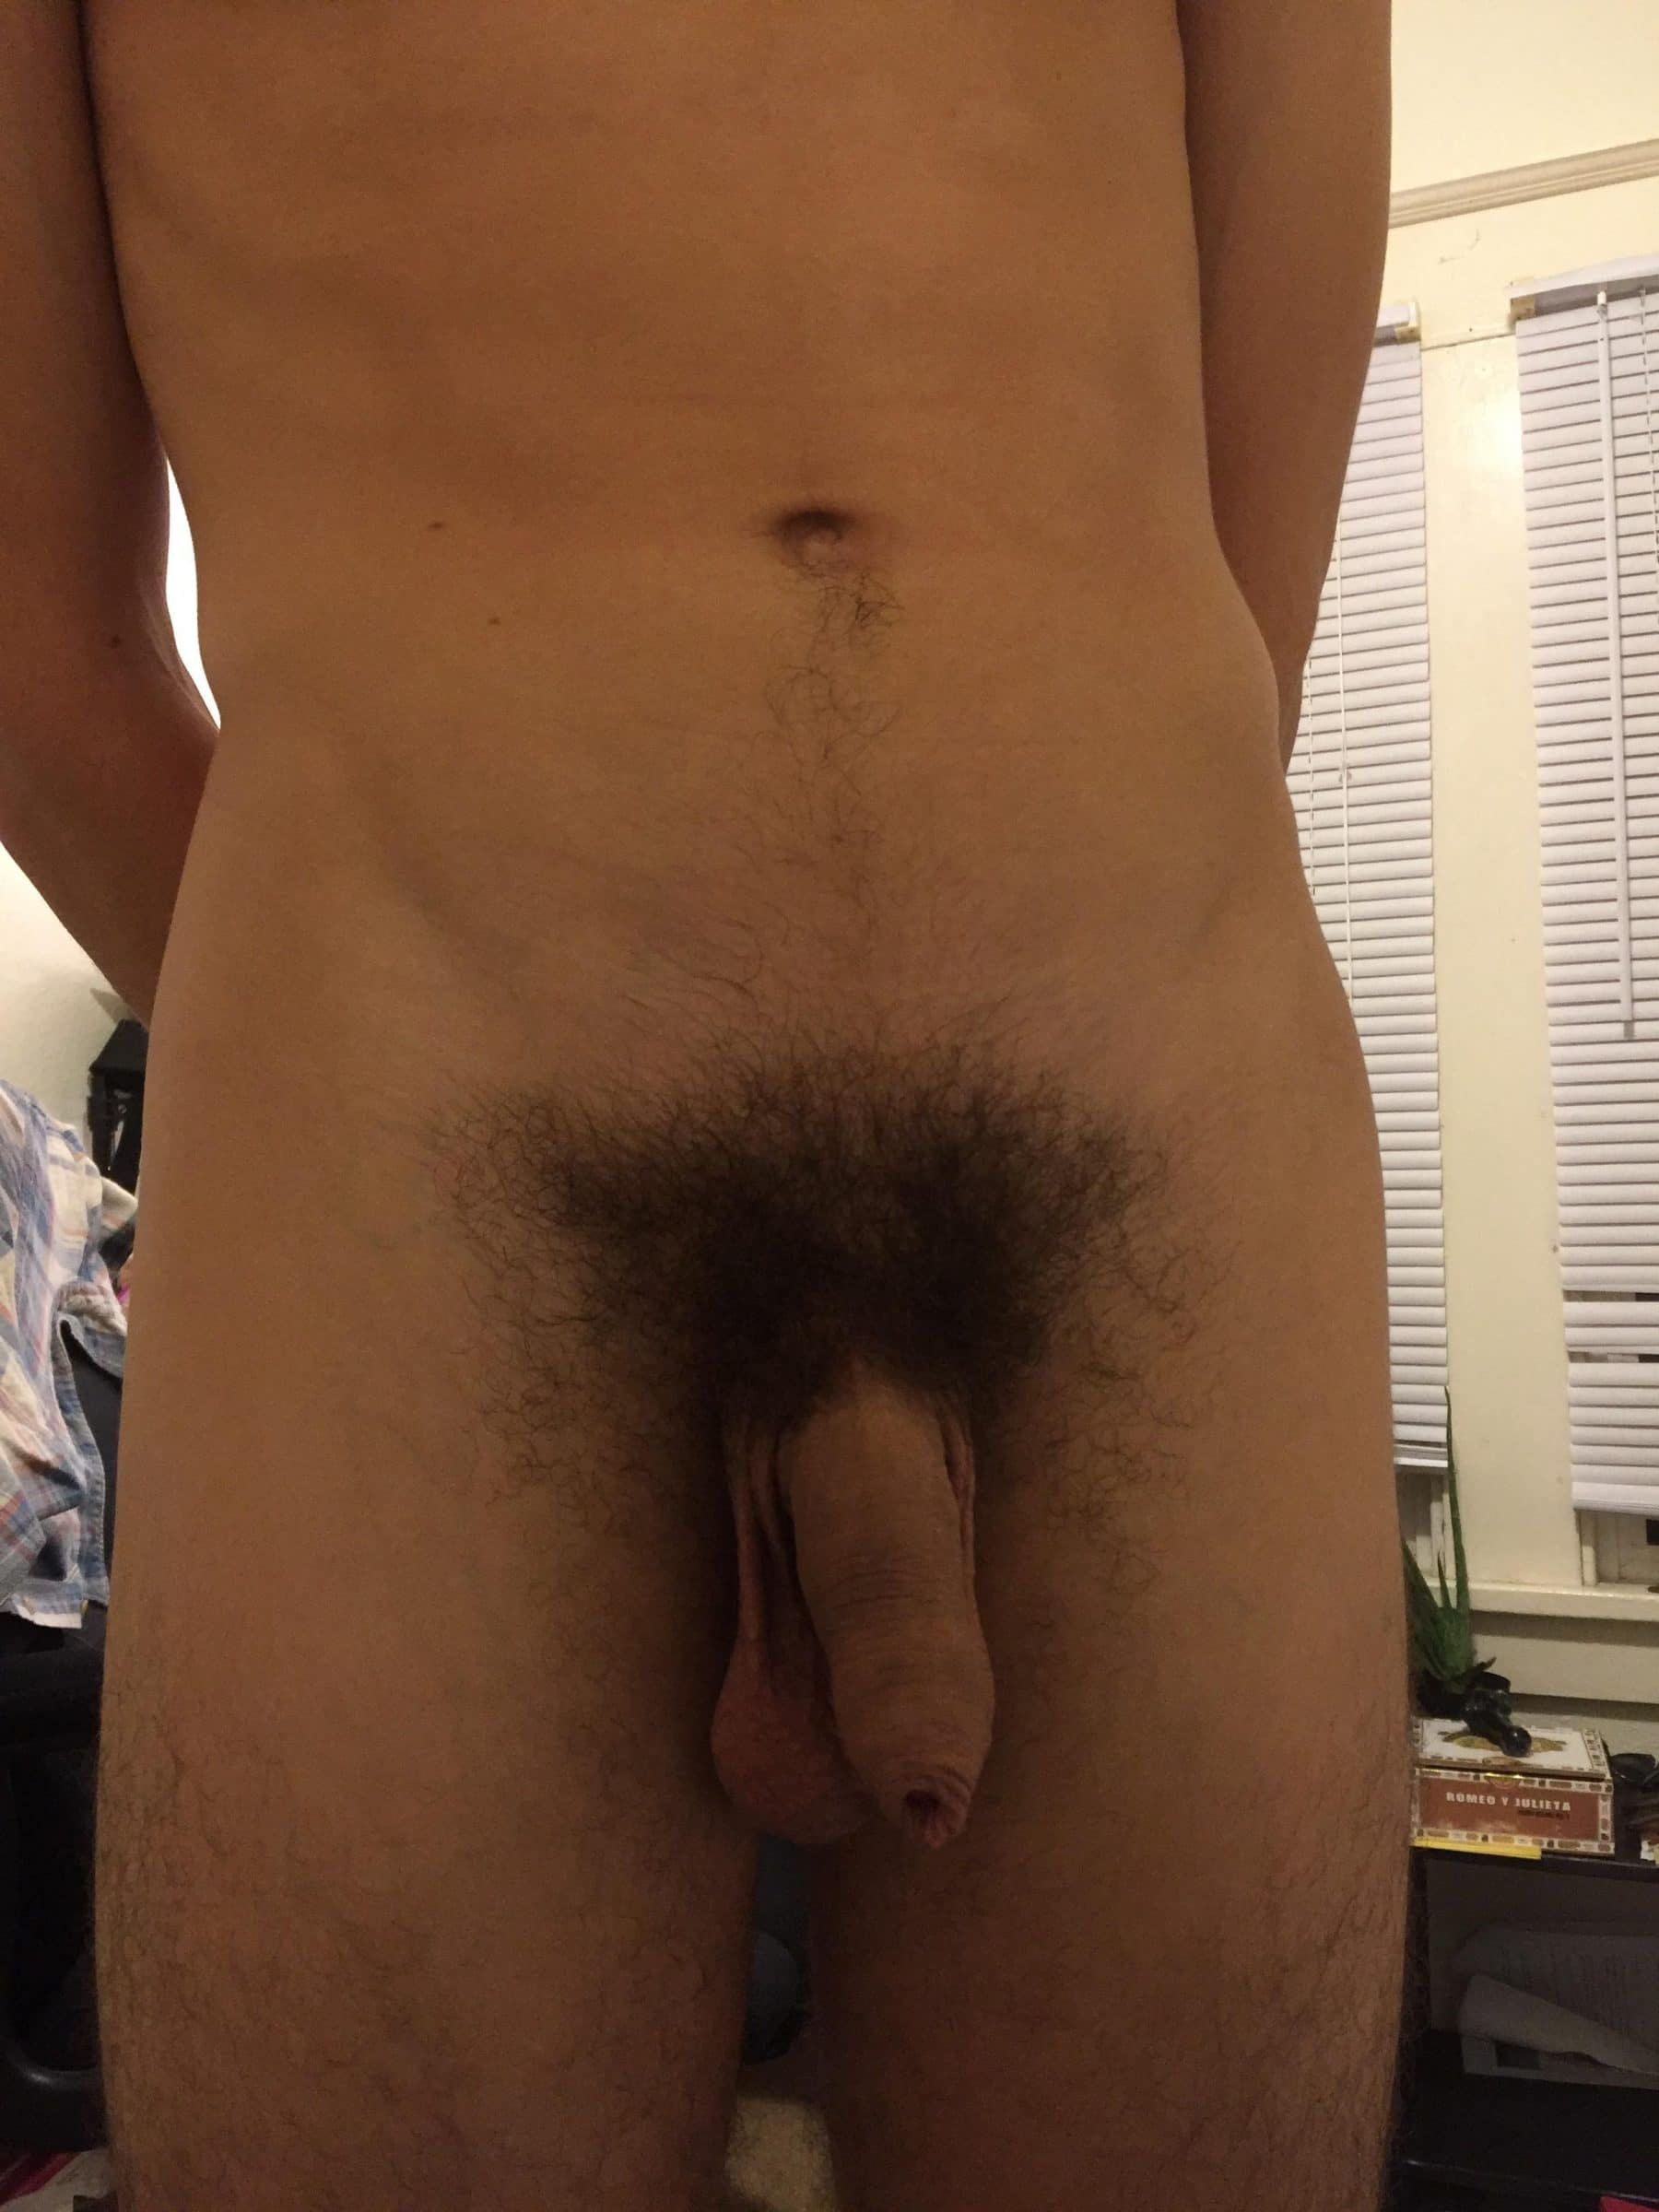 Soft hairy uncut cock